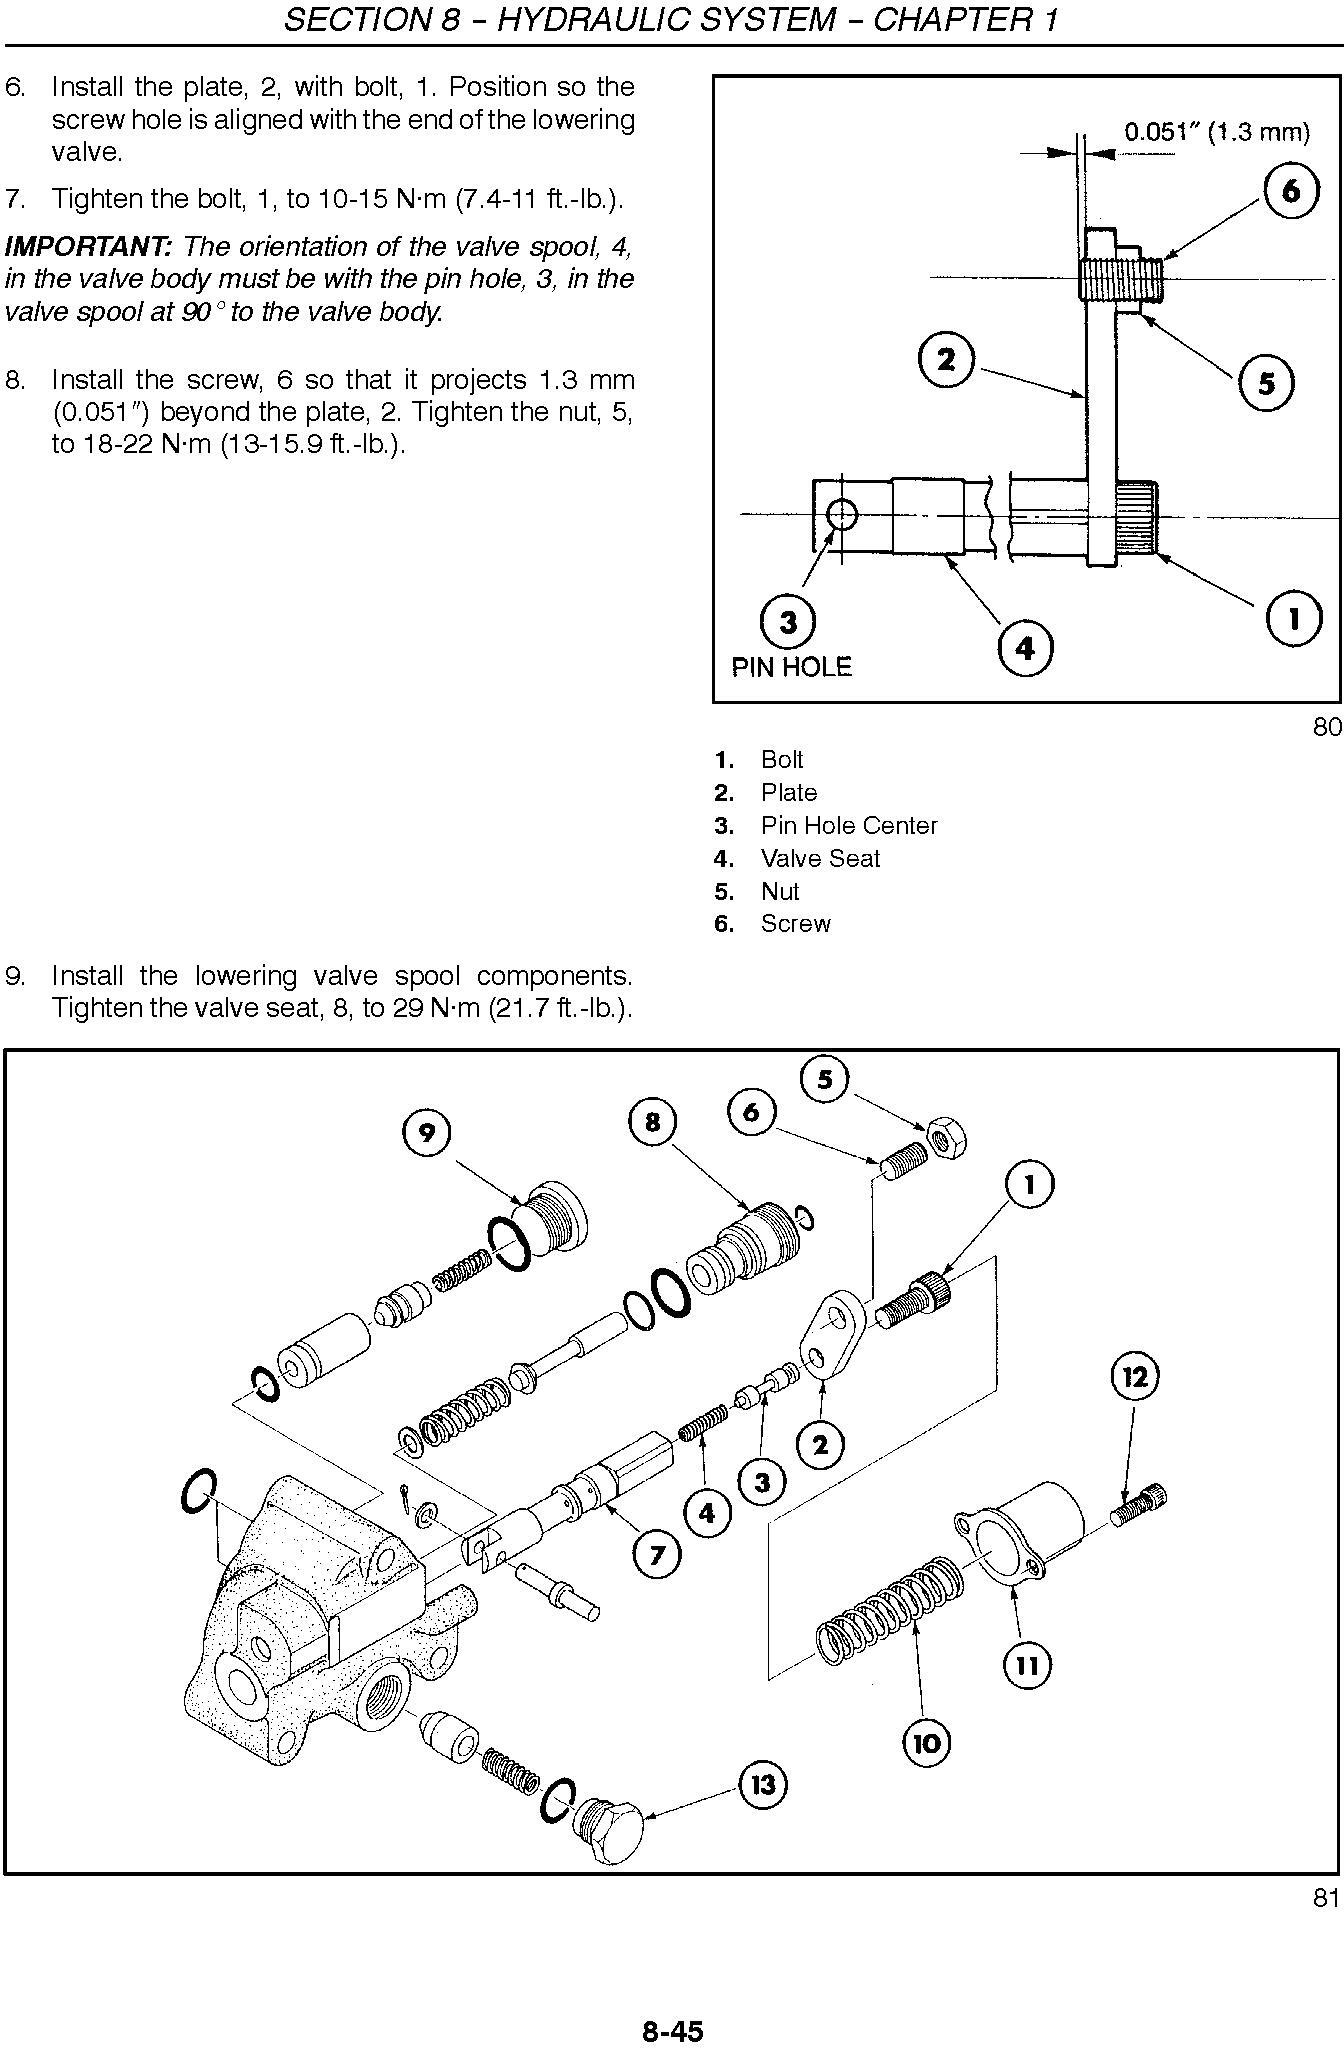 New Holland 3415 Compact Tractor Service Repair Manual - 3